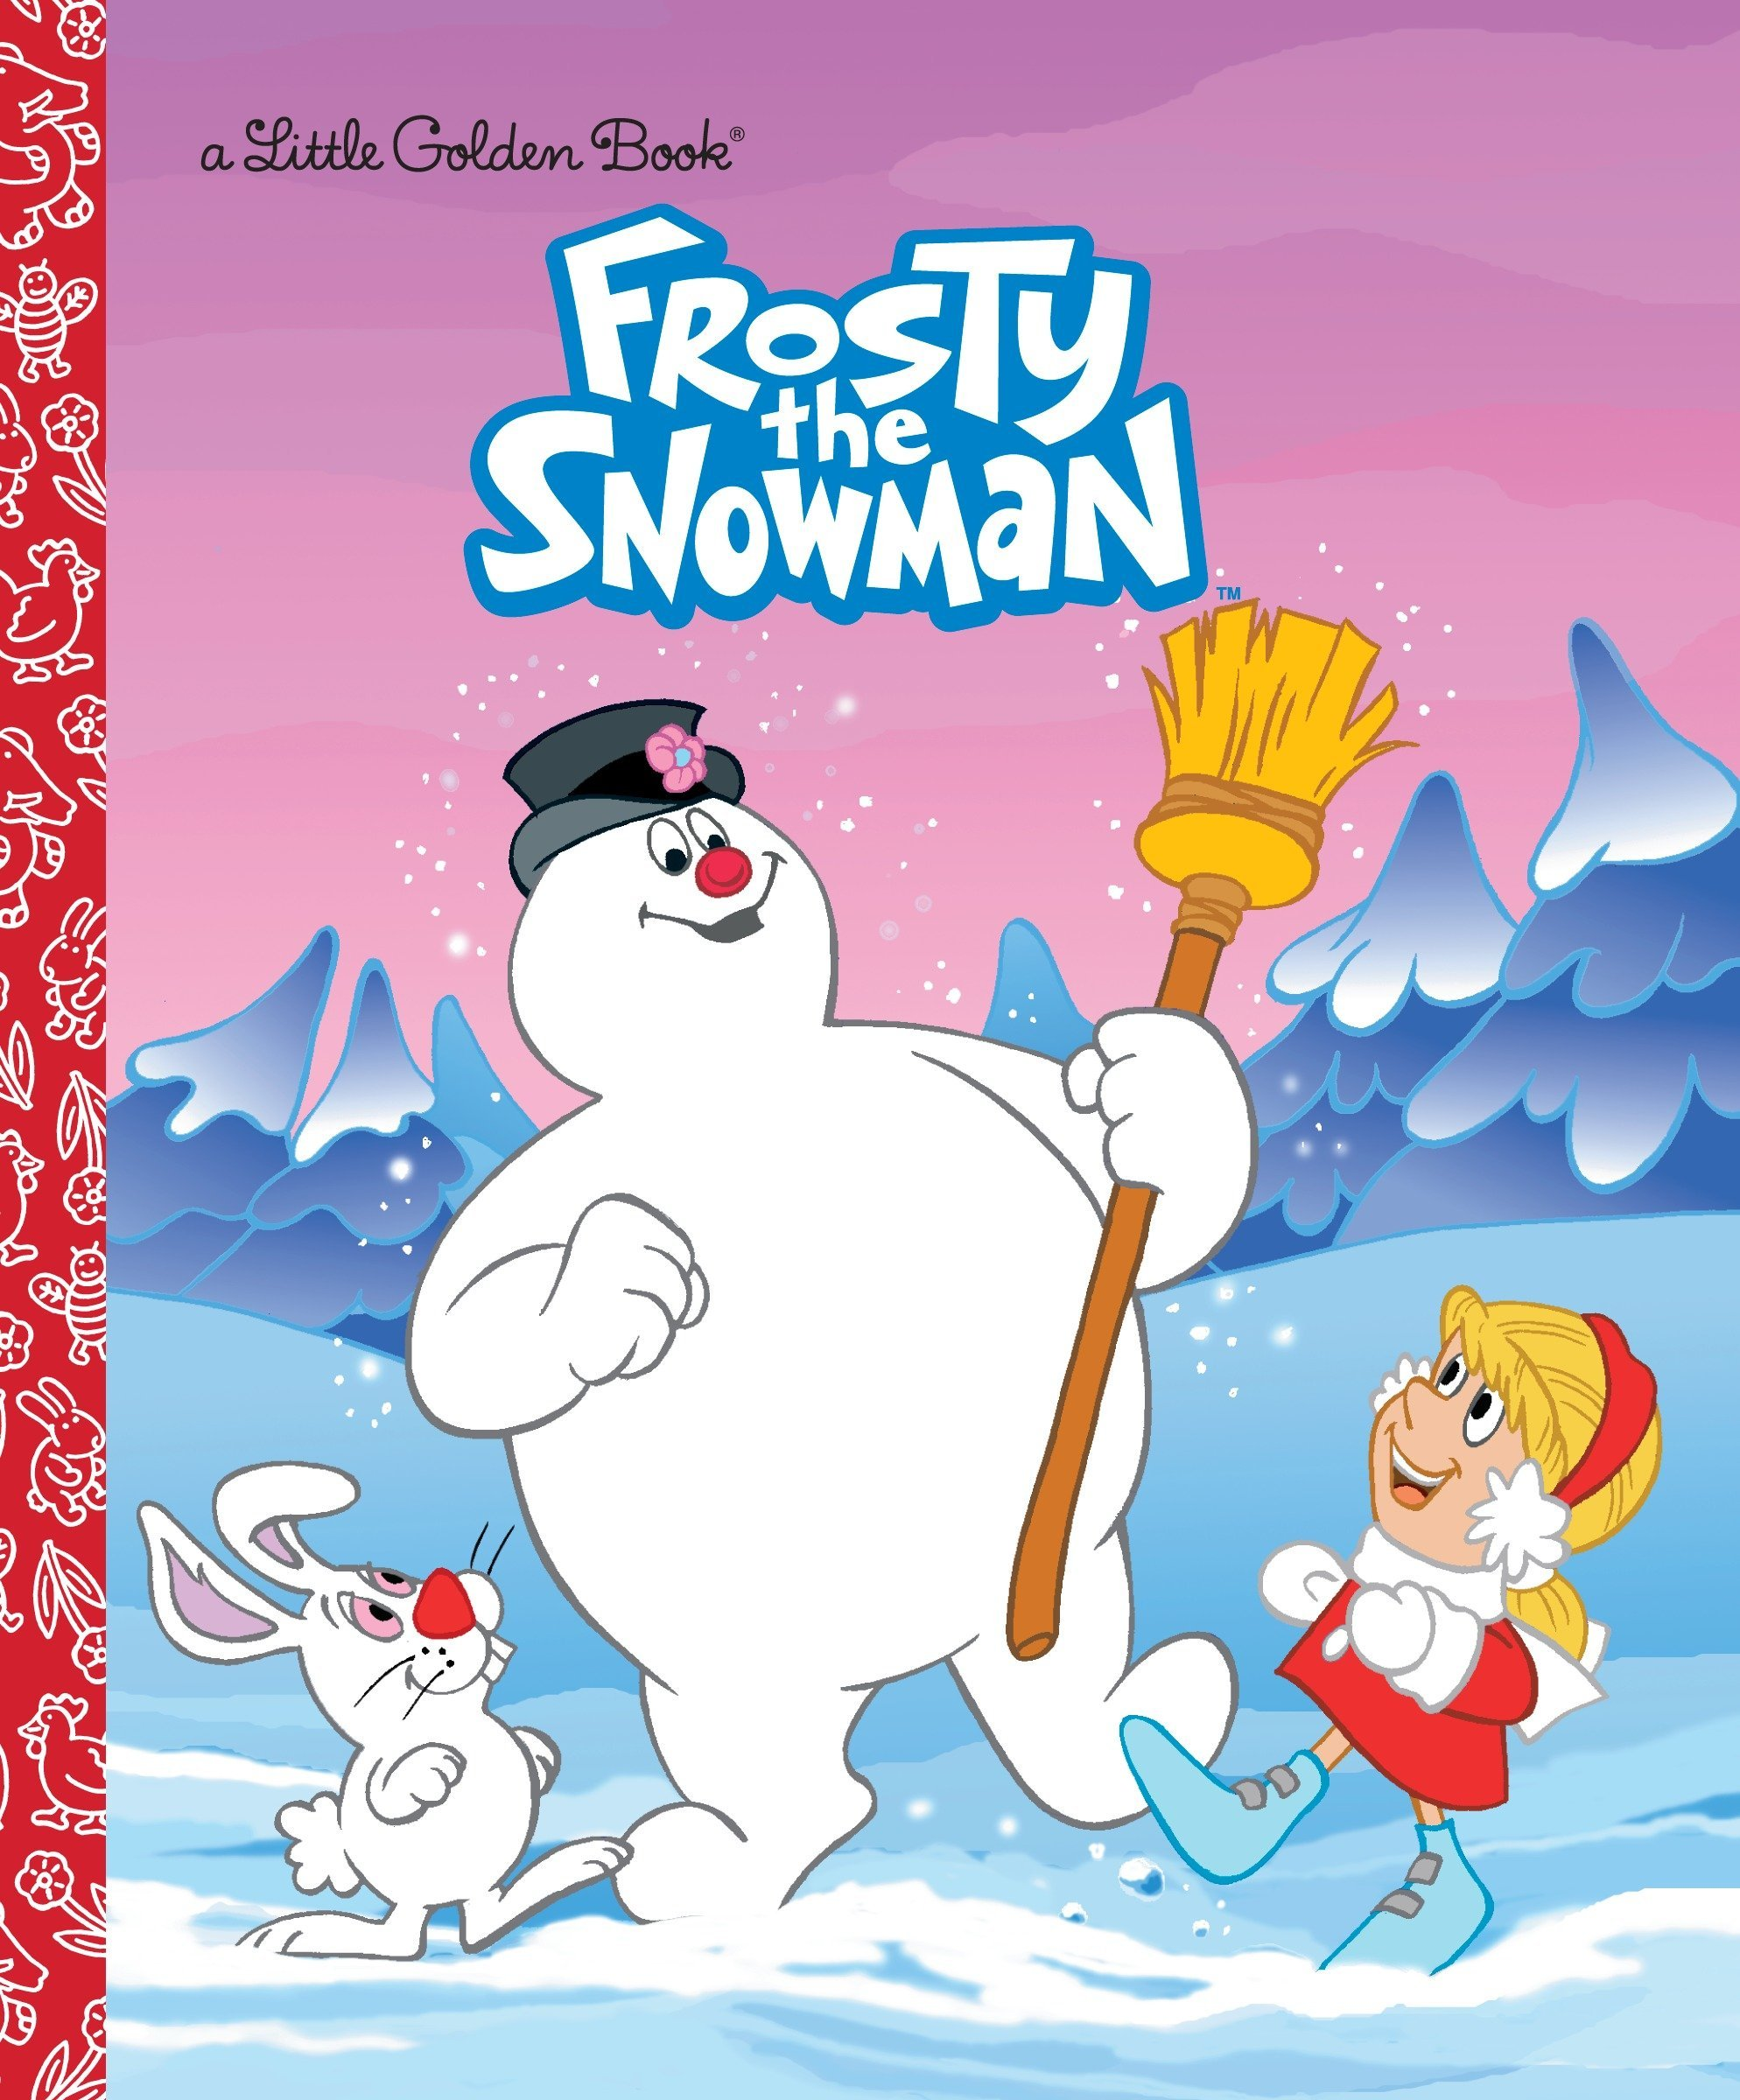 frosty the snowman frosty the snowman little golden book diane muldrow golden books 2015307960382 amazoncom books